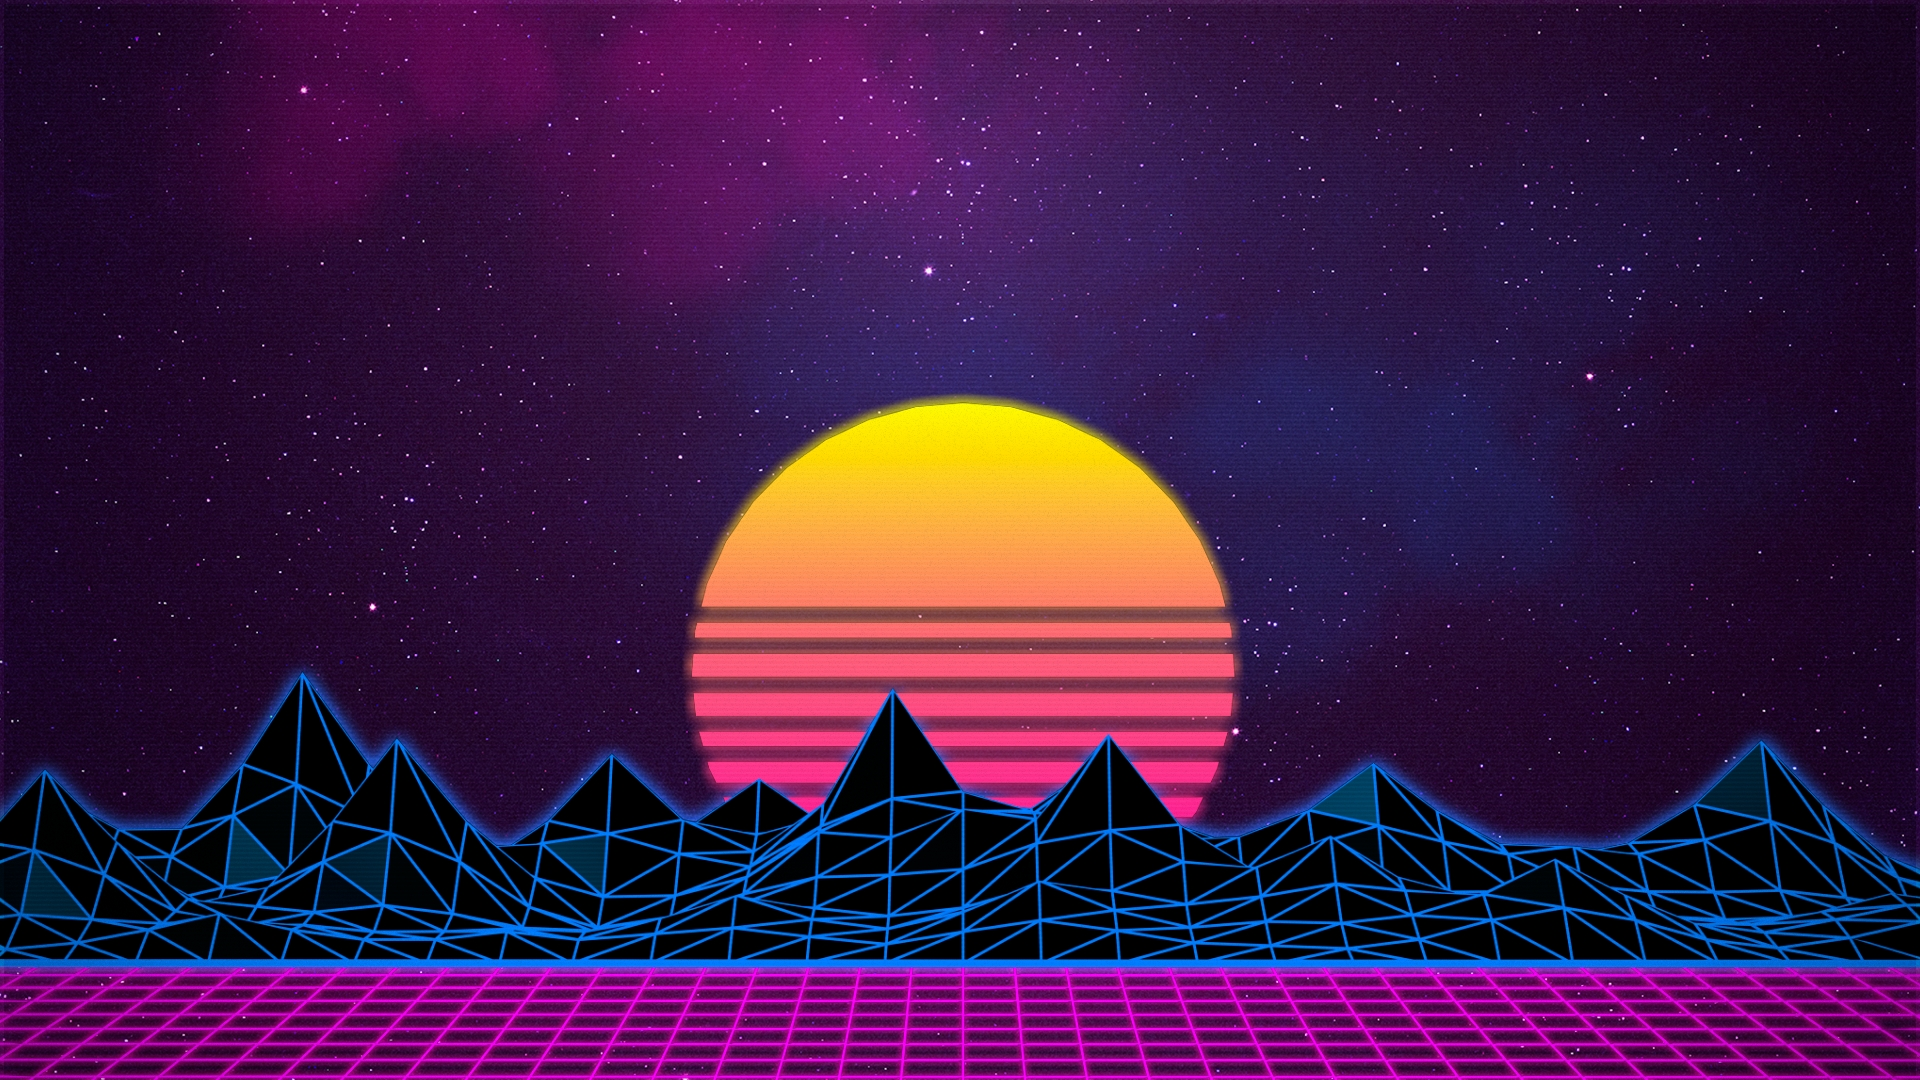 retrowave 80's bgrafael-de-jongh on deviantart